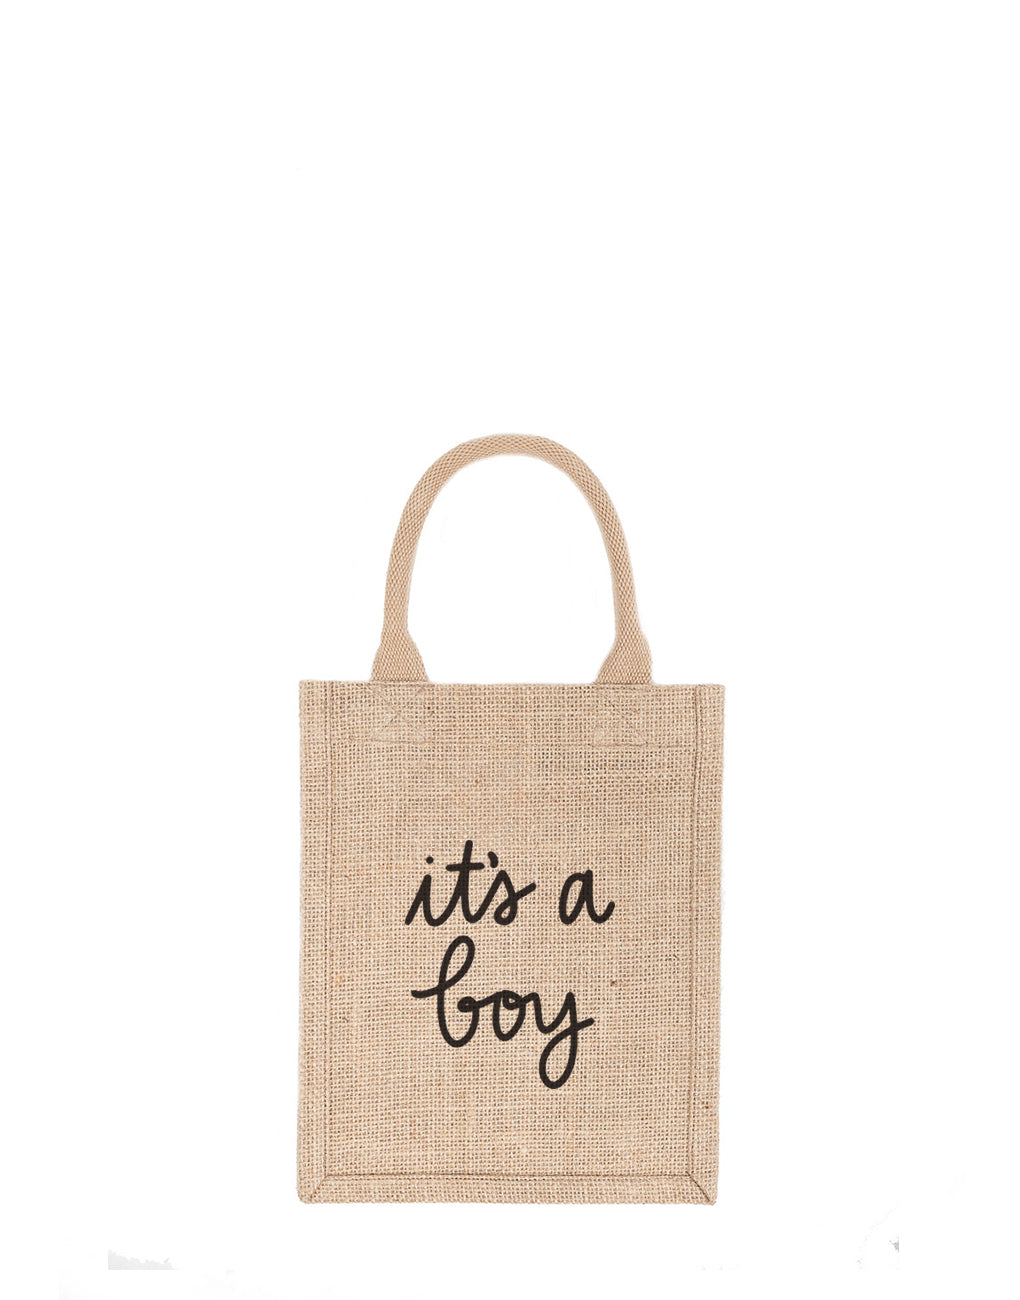 Small It's A Boy Reusable Gift Tote In Black Font | The Little Market